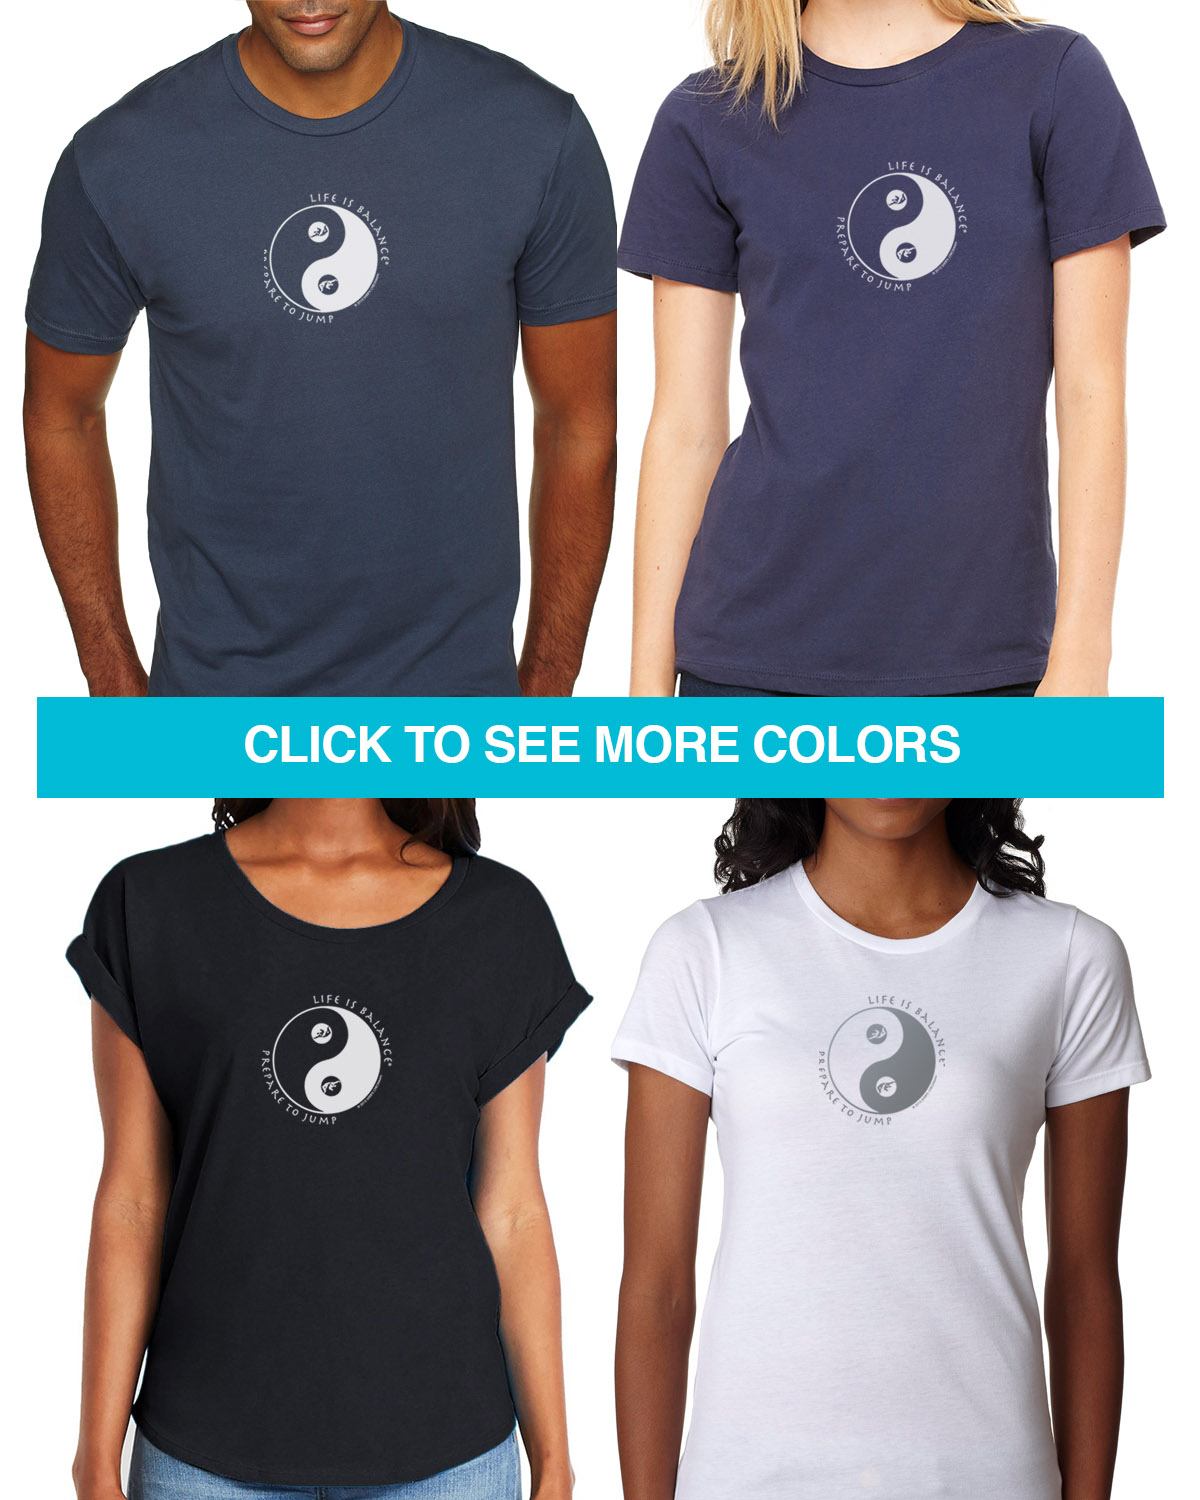 Skydiving Tees for Men & Women